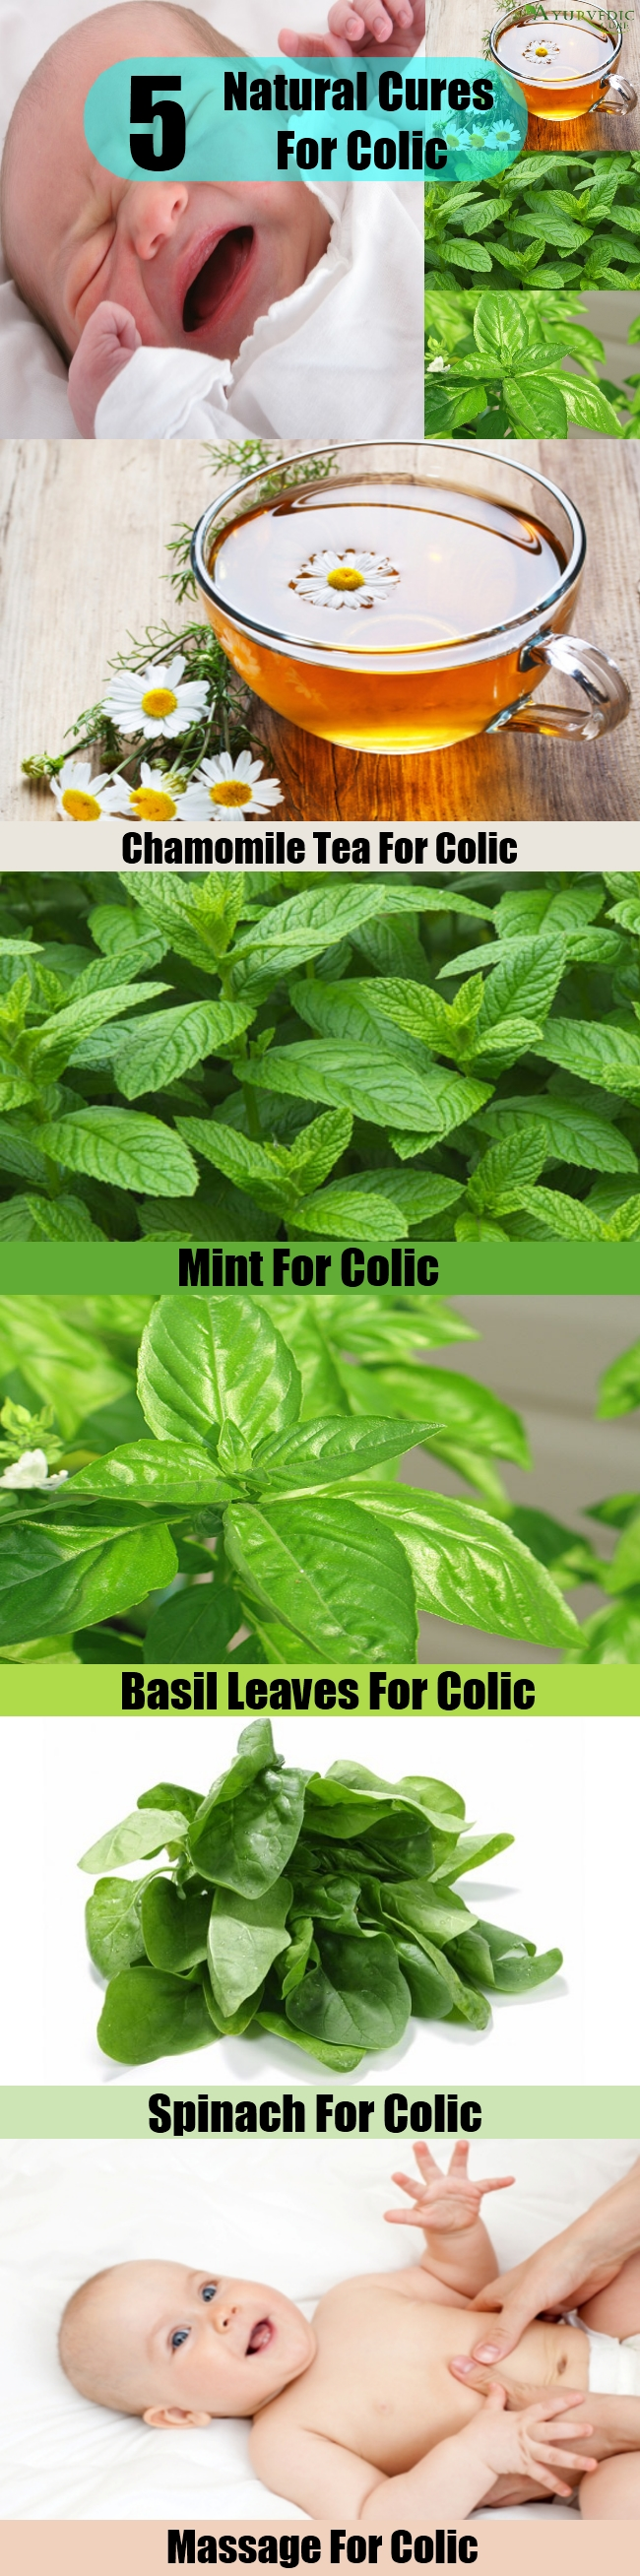 5 Simple Natural Cures For Colic